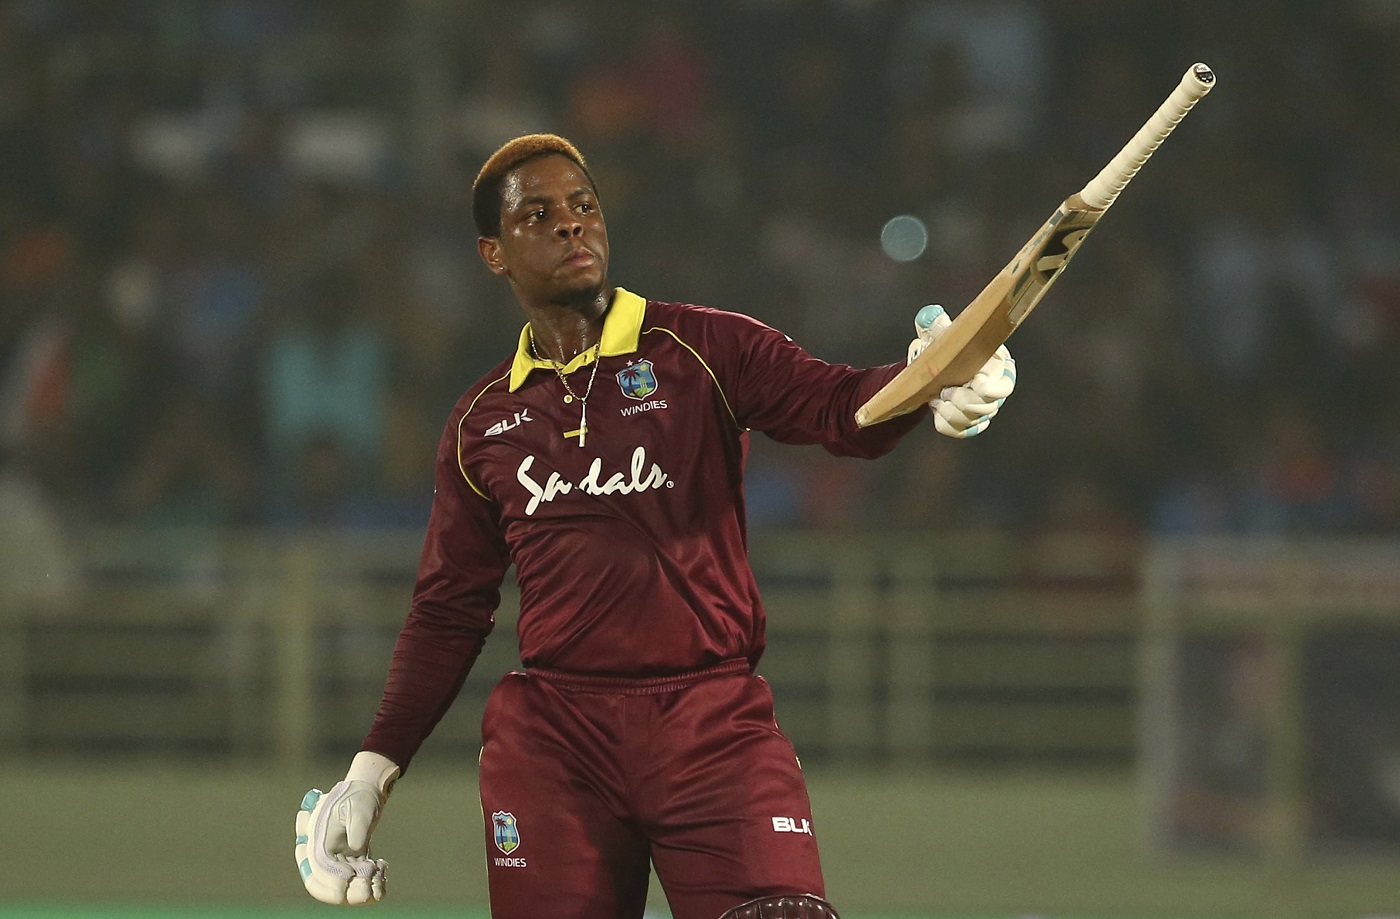 Twitter Hails Shimron Hetmyer For Another Impressive Knock